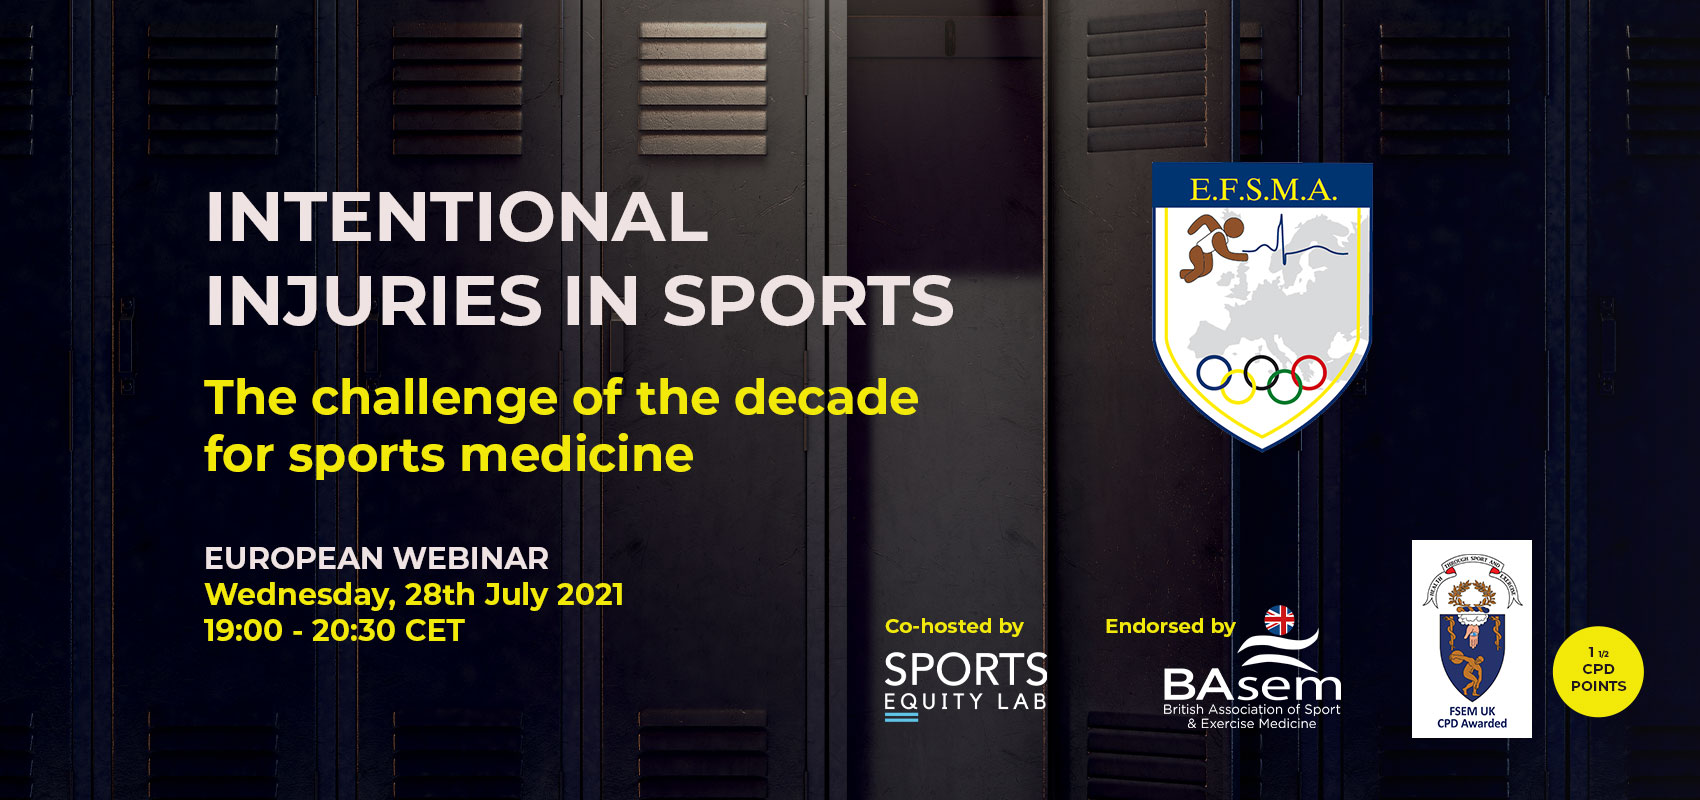 Intentional injuries in sports — The challenge of the decade for sports medicine